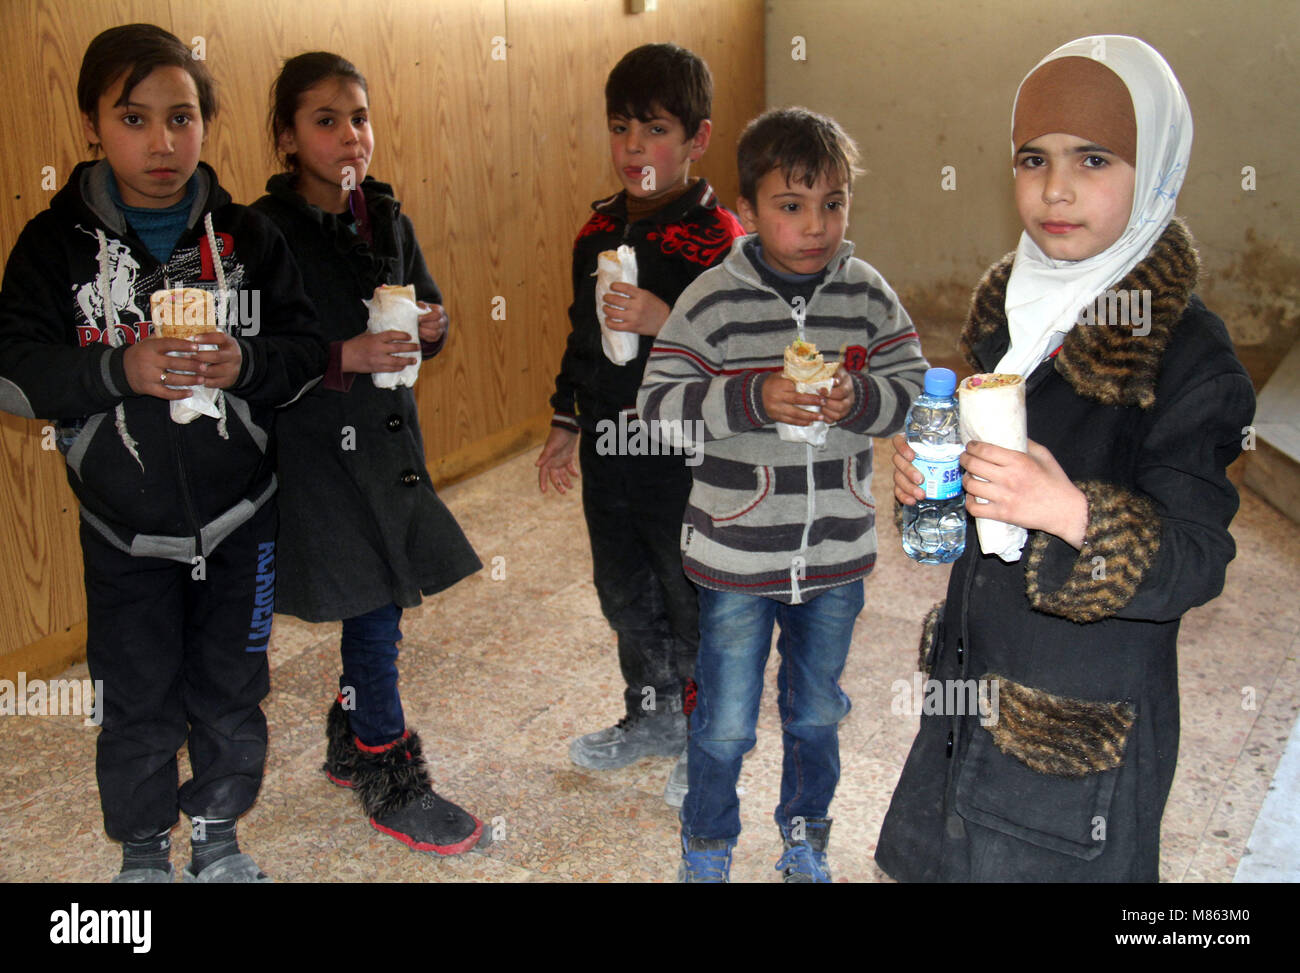 Damascus. 14th Mar, 2018. Evacuated children eat food at a temporary shelter in the Wafidin area in northeast Damascus - Stock Image